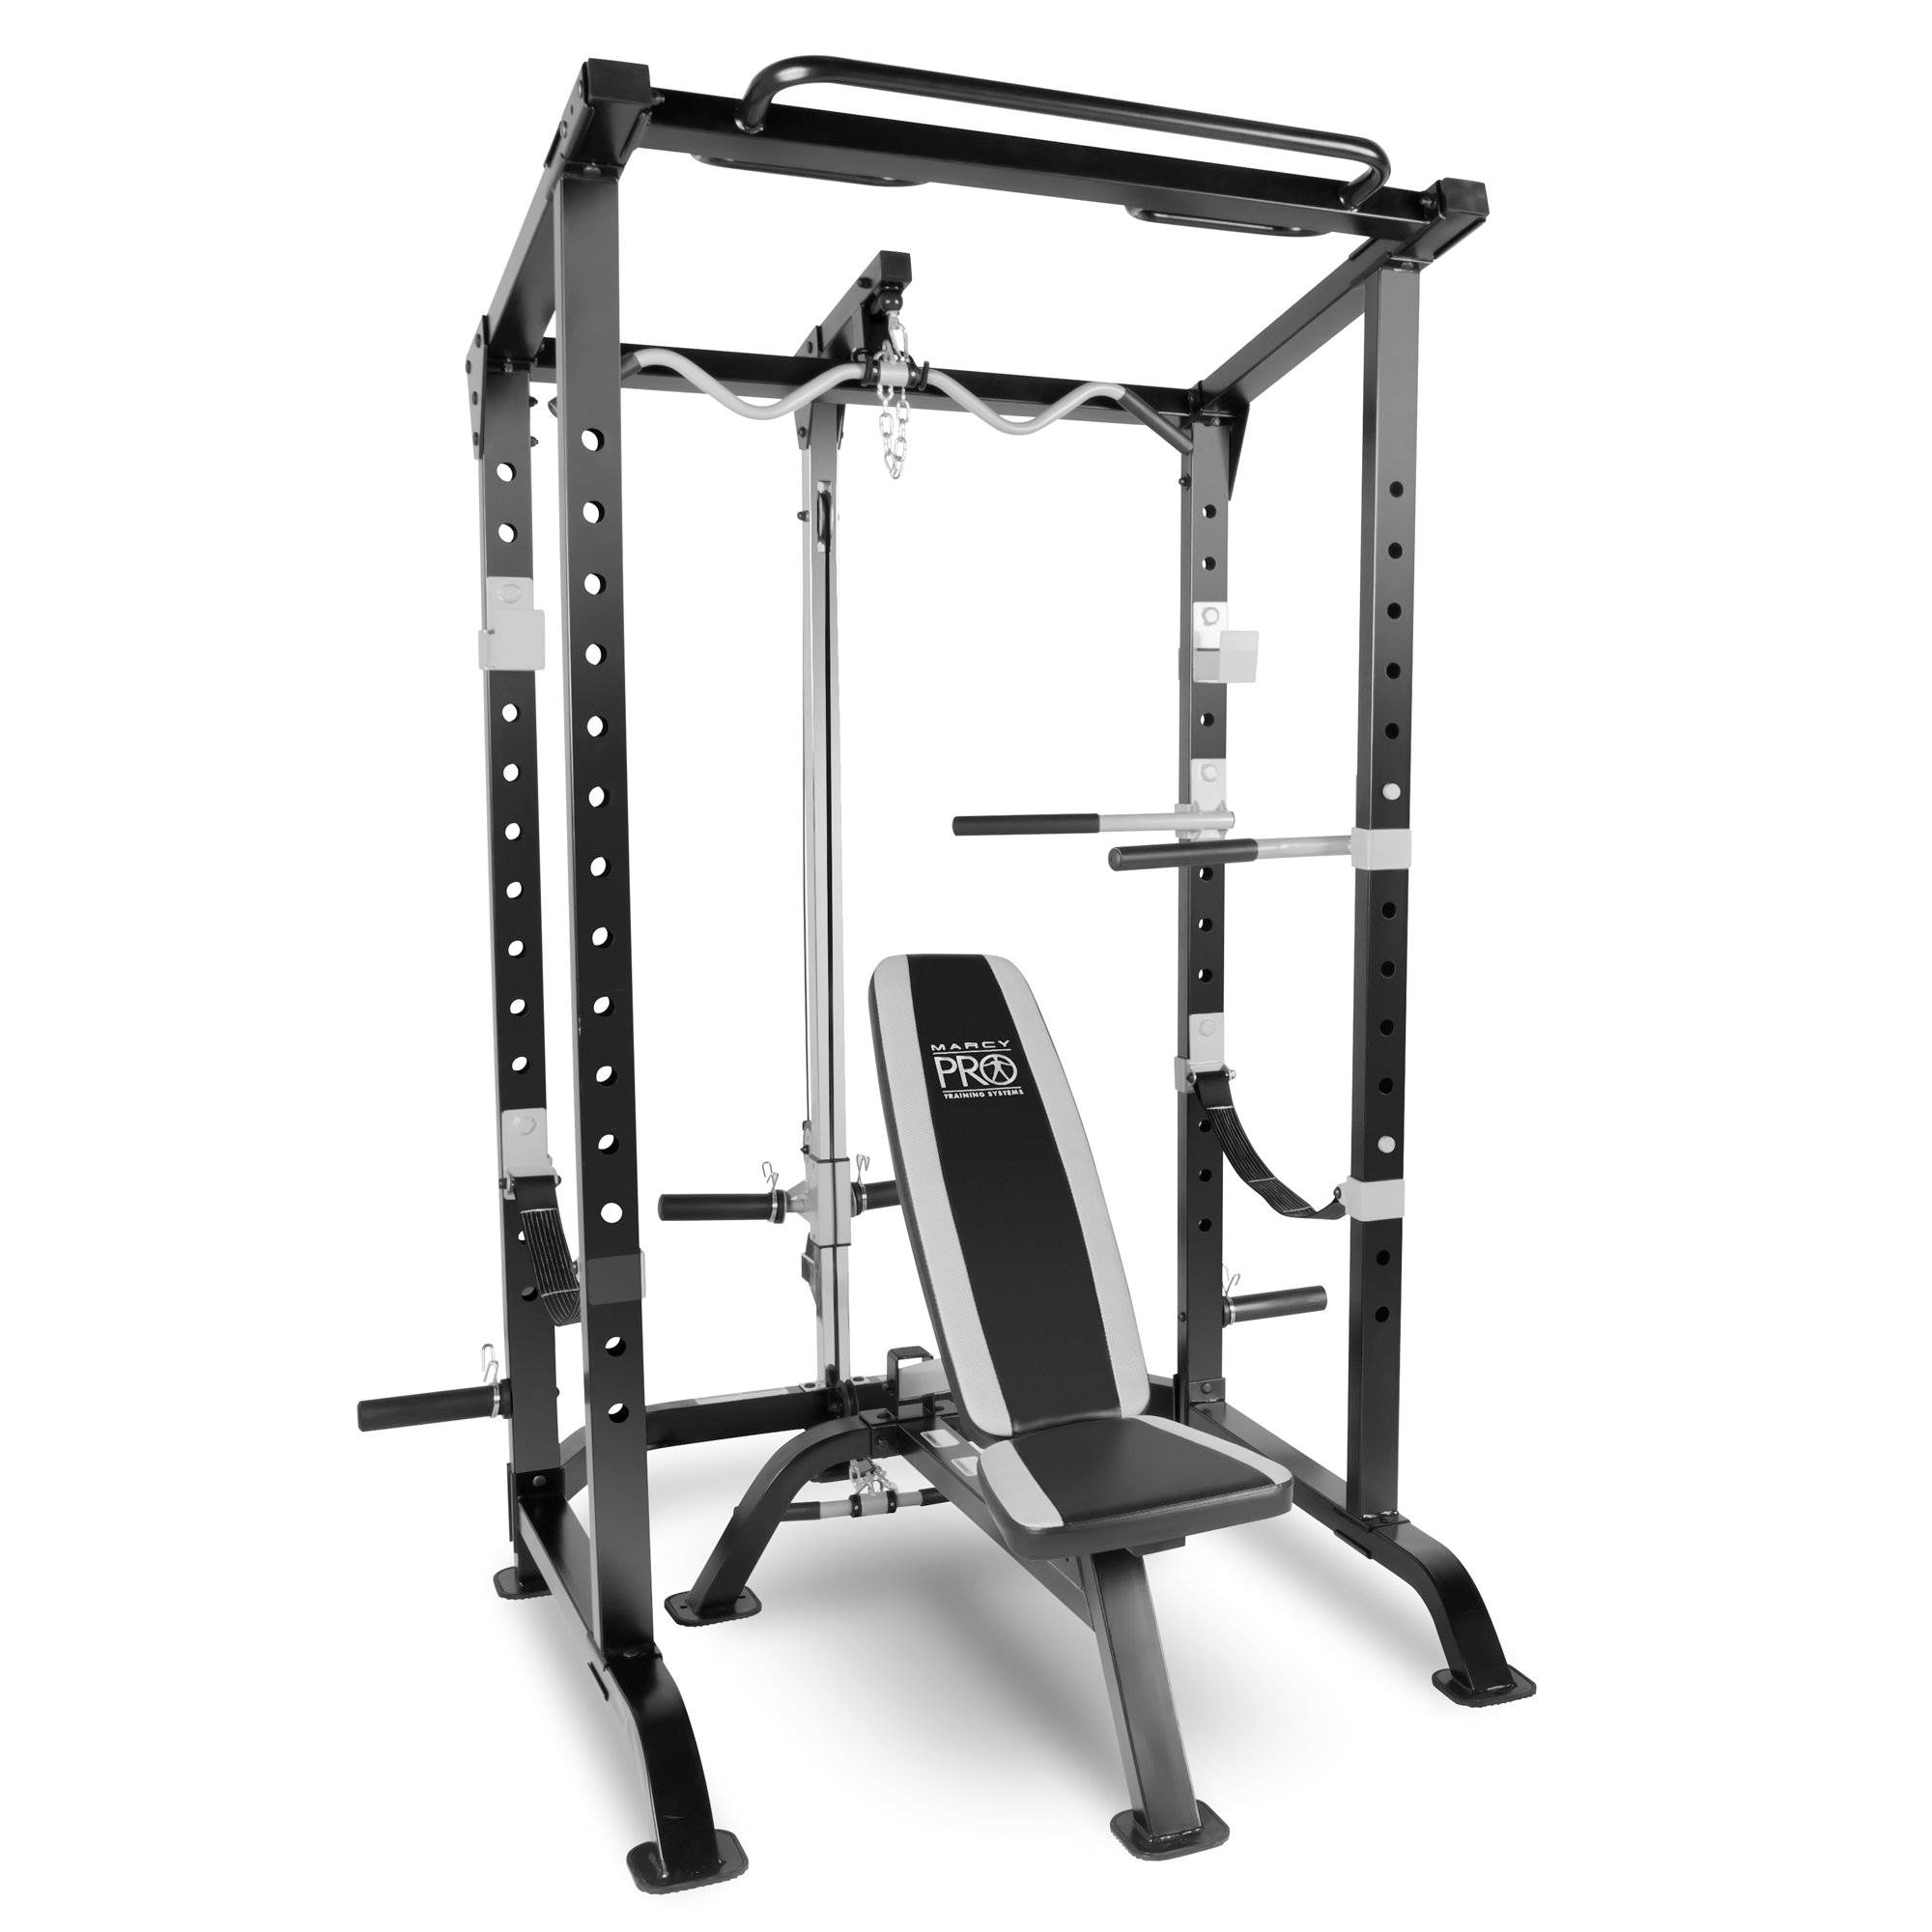 Marcy Pro Full Cage And Bench System Mwm 4484